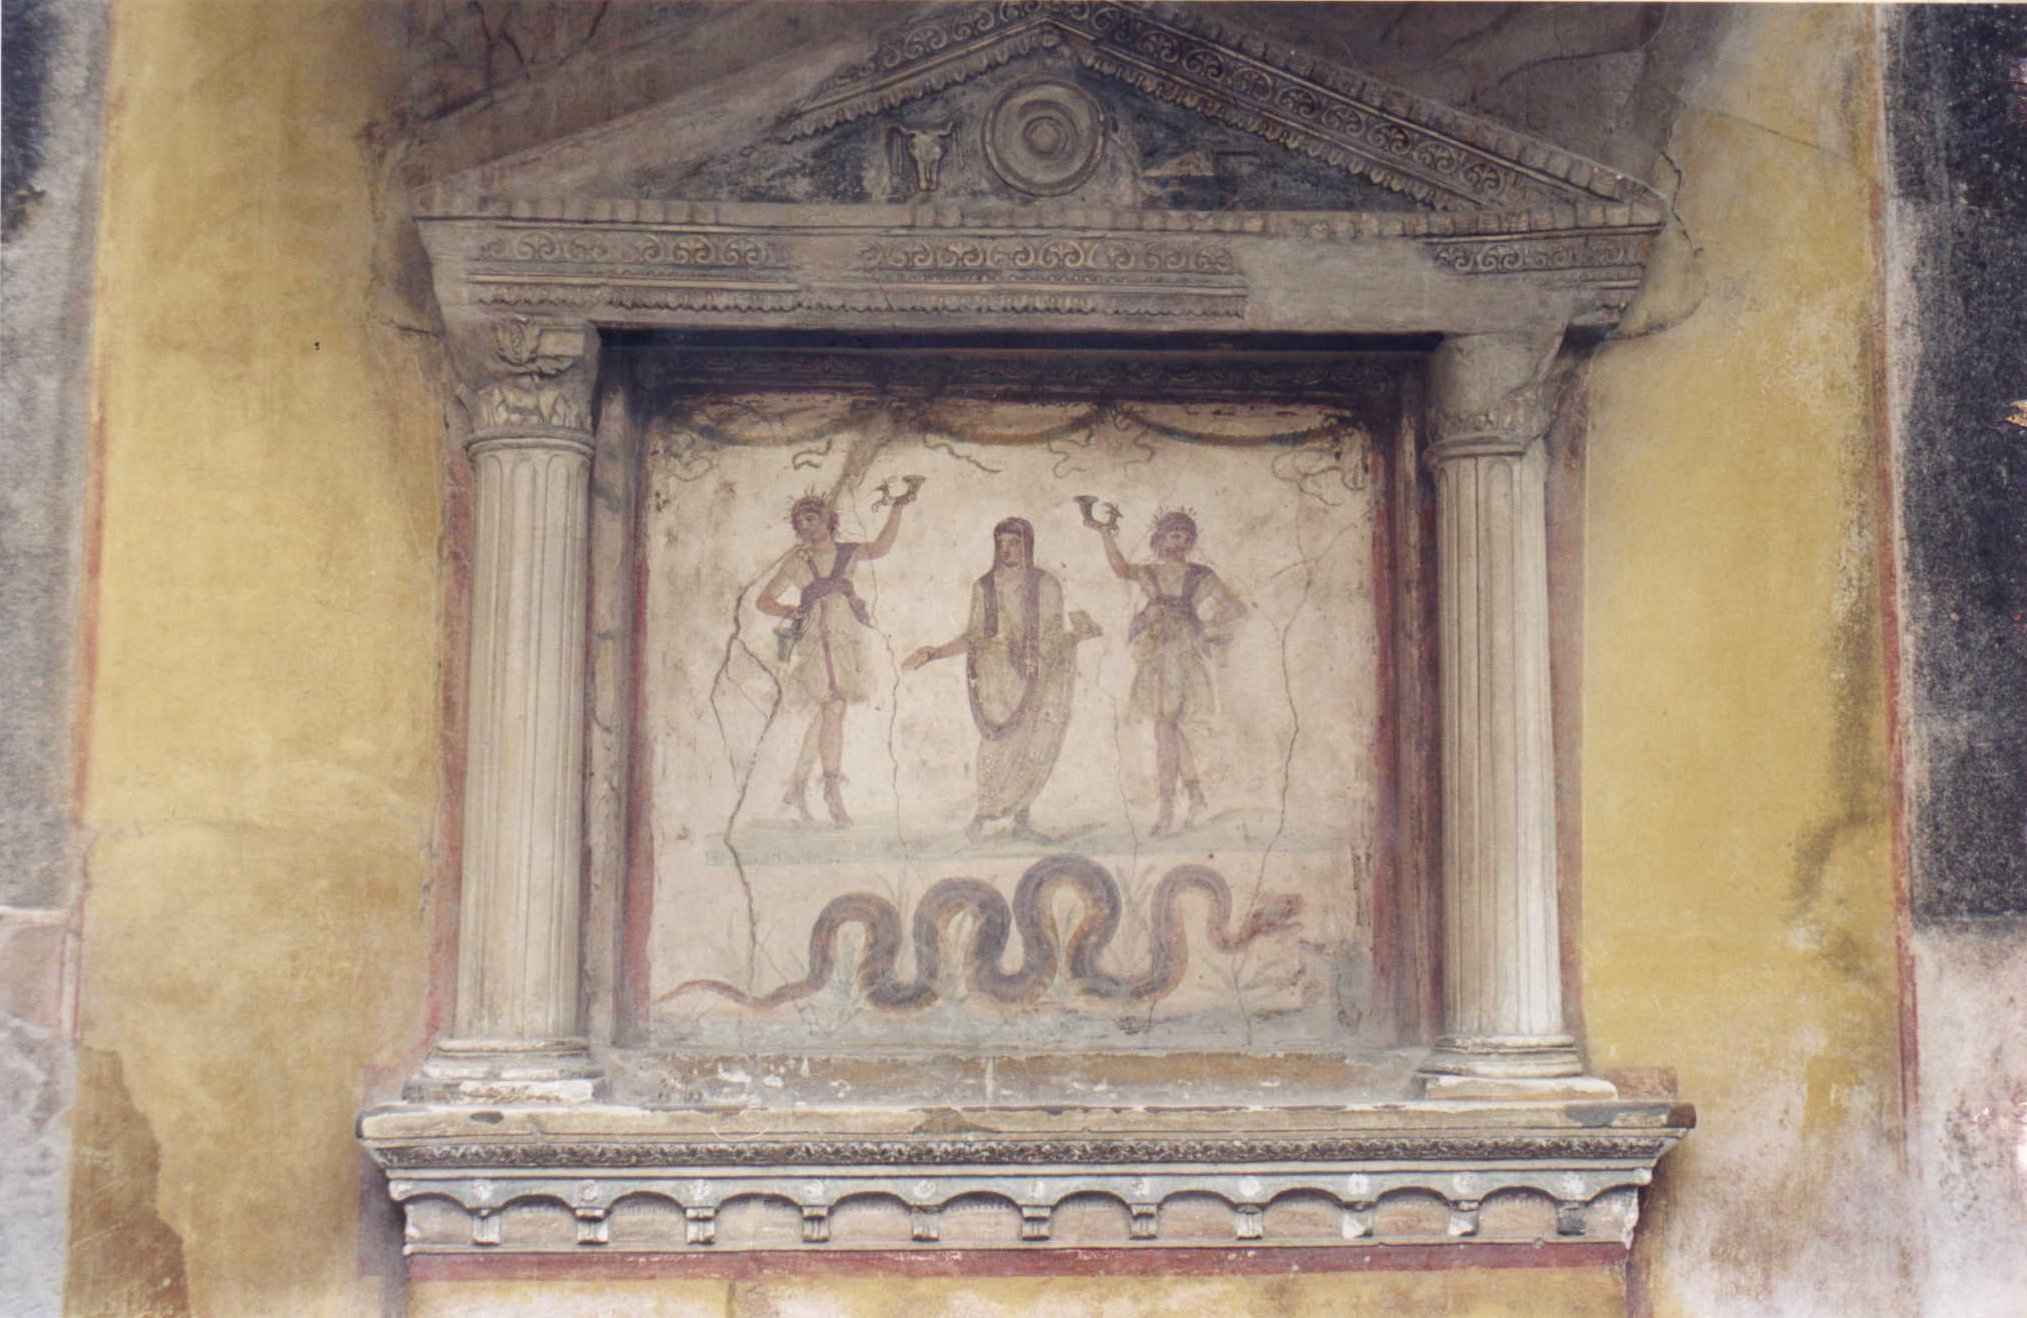 roman household gods Behavior in god's household because of the interest in rules of behavior for members of a greco-roman household (husband-wife, parent-child, master-slave.